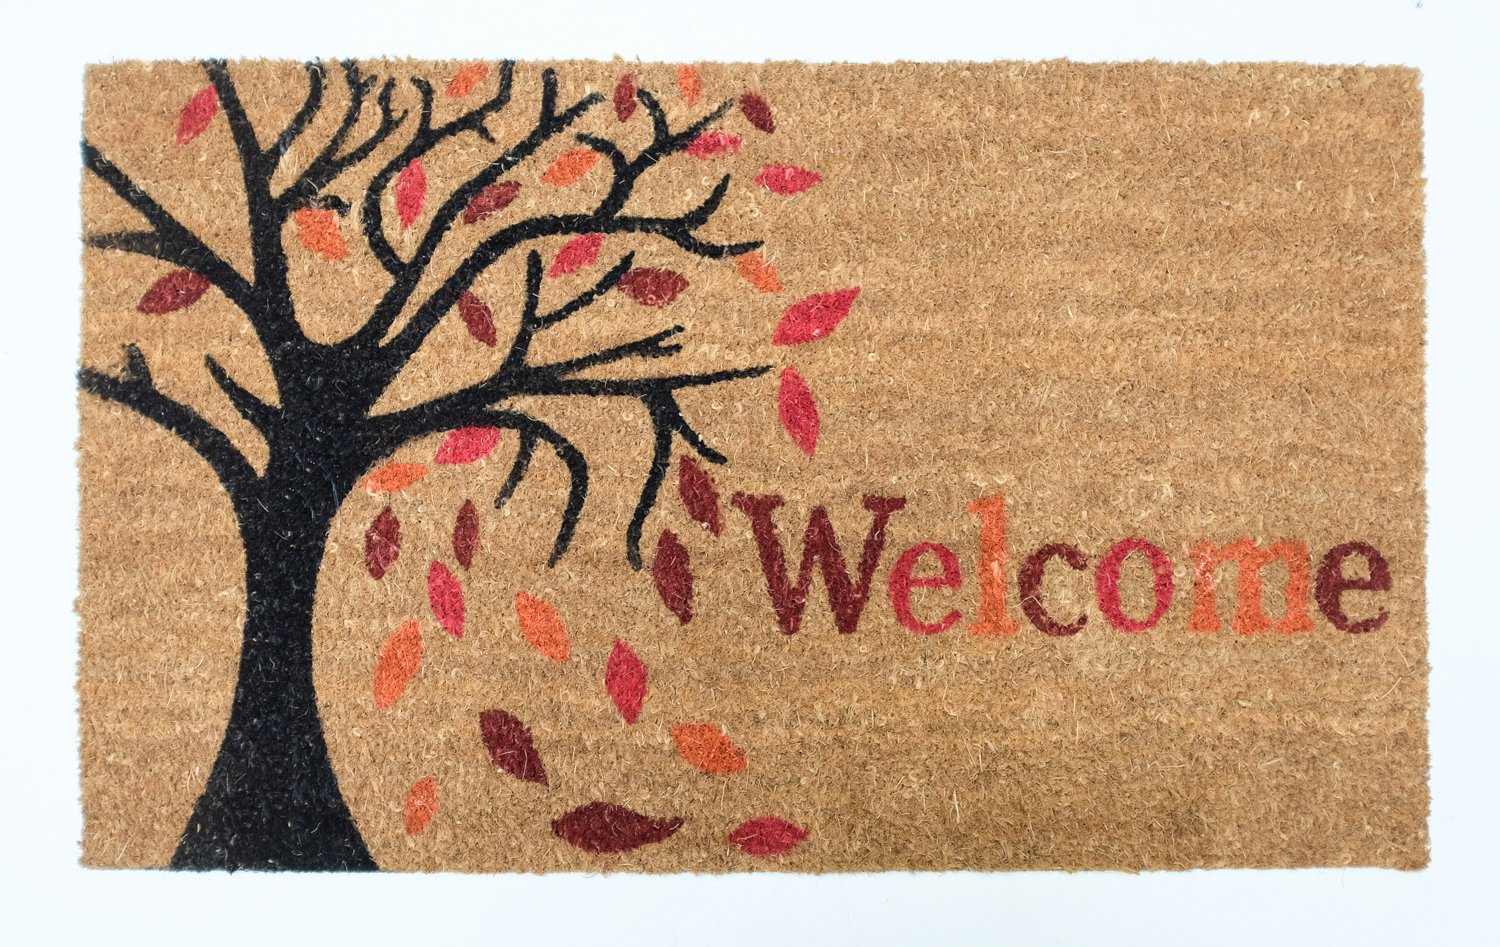 Heavy Duty Entry Way Shoes Scraper Patio Rug Dirt Debris Mud Trapper Waterproof Black Coco Leaves J /& M Home Fashions 81372A 18x30 J/&M Home Fashions Natural Coir PVC Non-Slip Outdoor//Indoor Thanksgiving or Fall Doormat